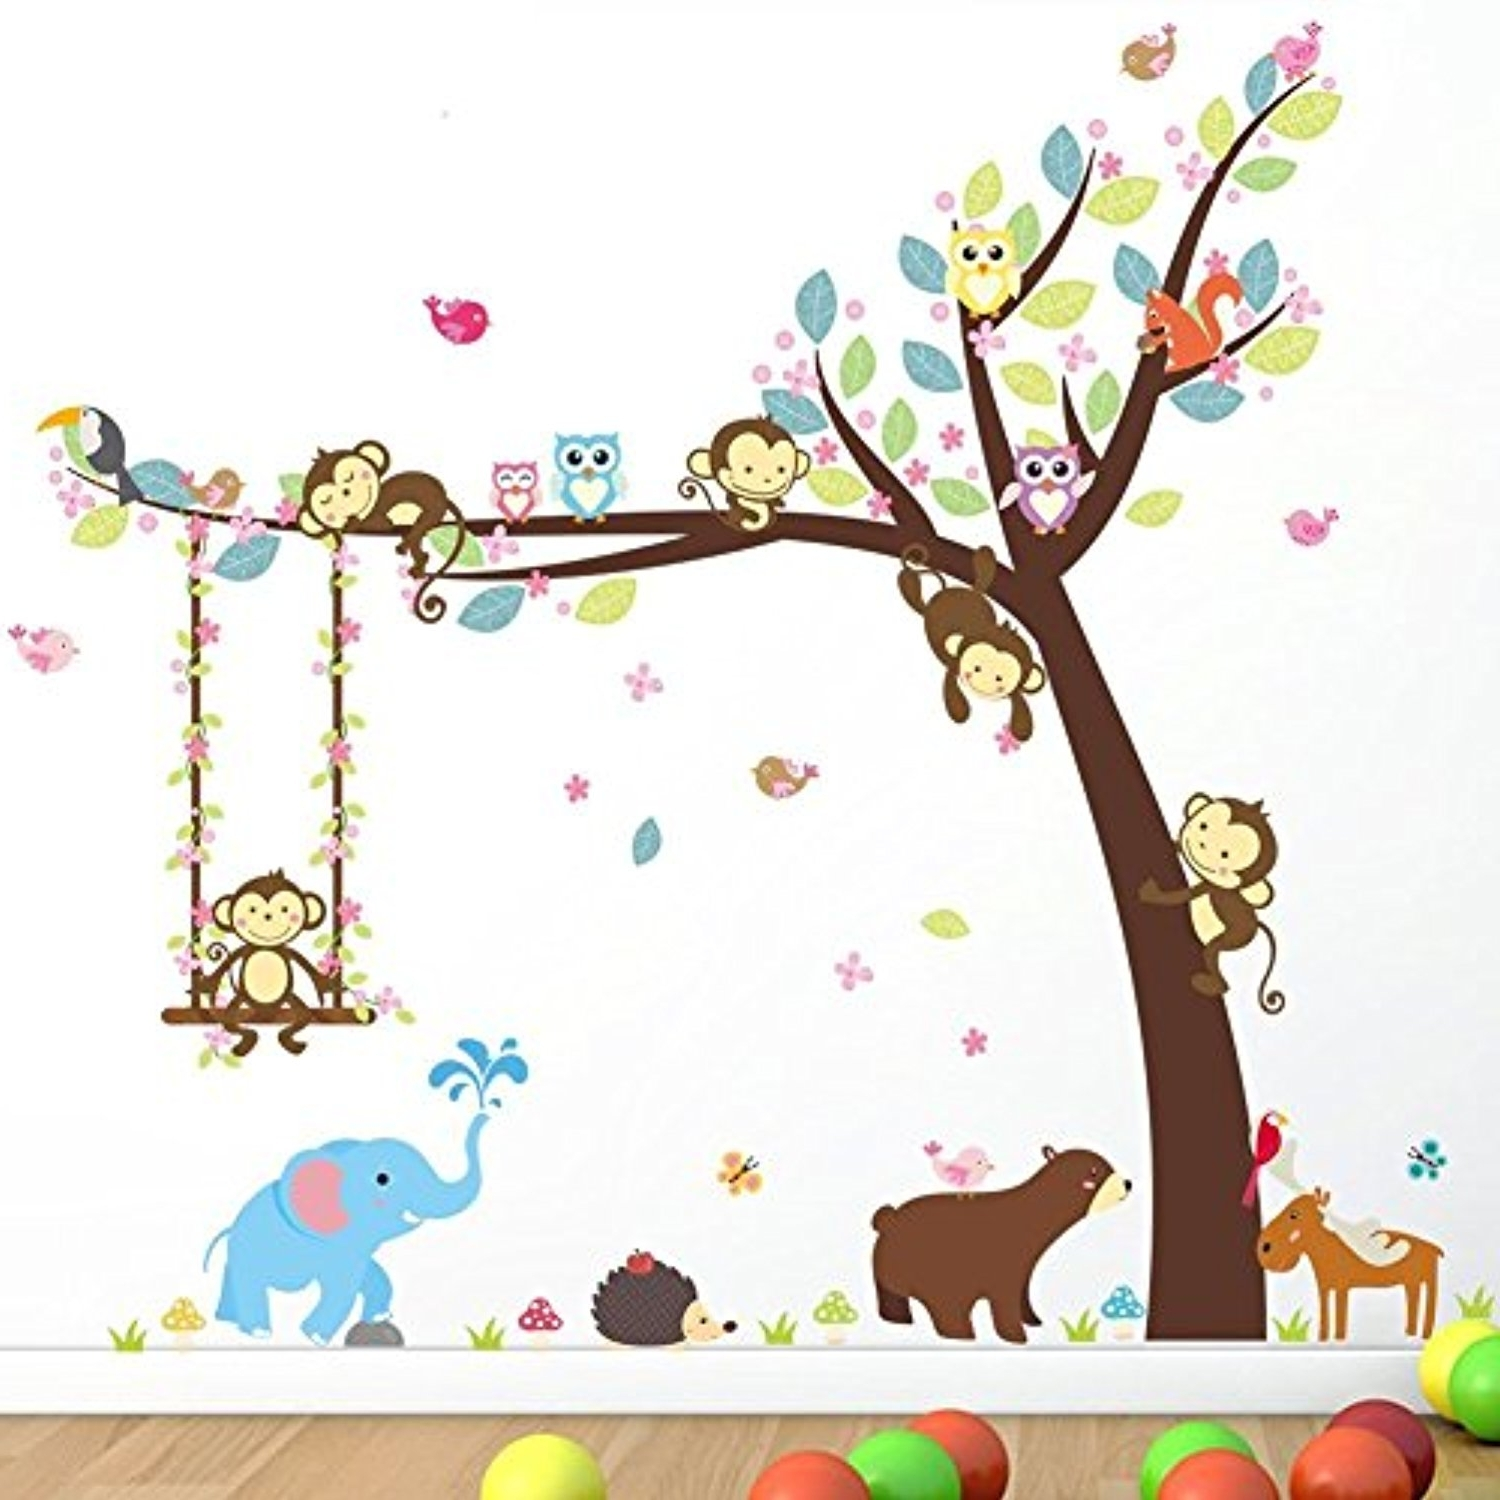 Most Popular Children Wall Art With Regard To Animoeco Animal Wall Stickers Monkey Bear Owls Elephant Jungle (View 11 of 15)